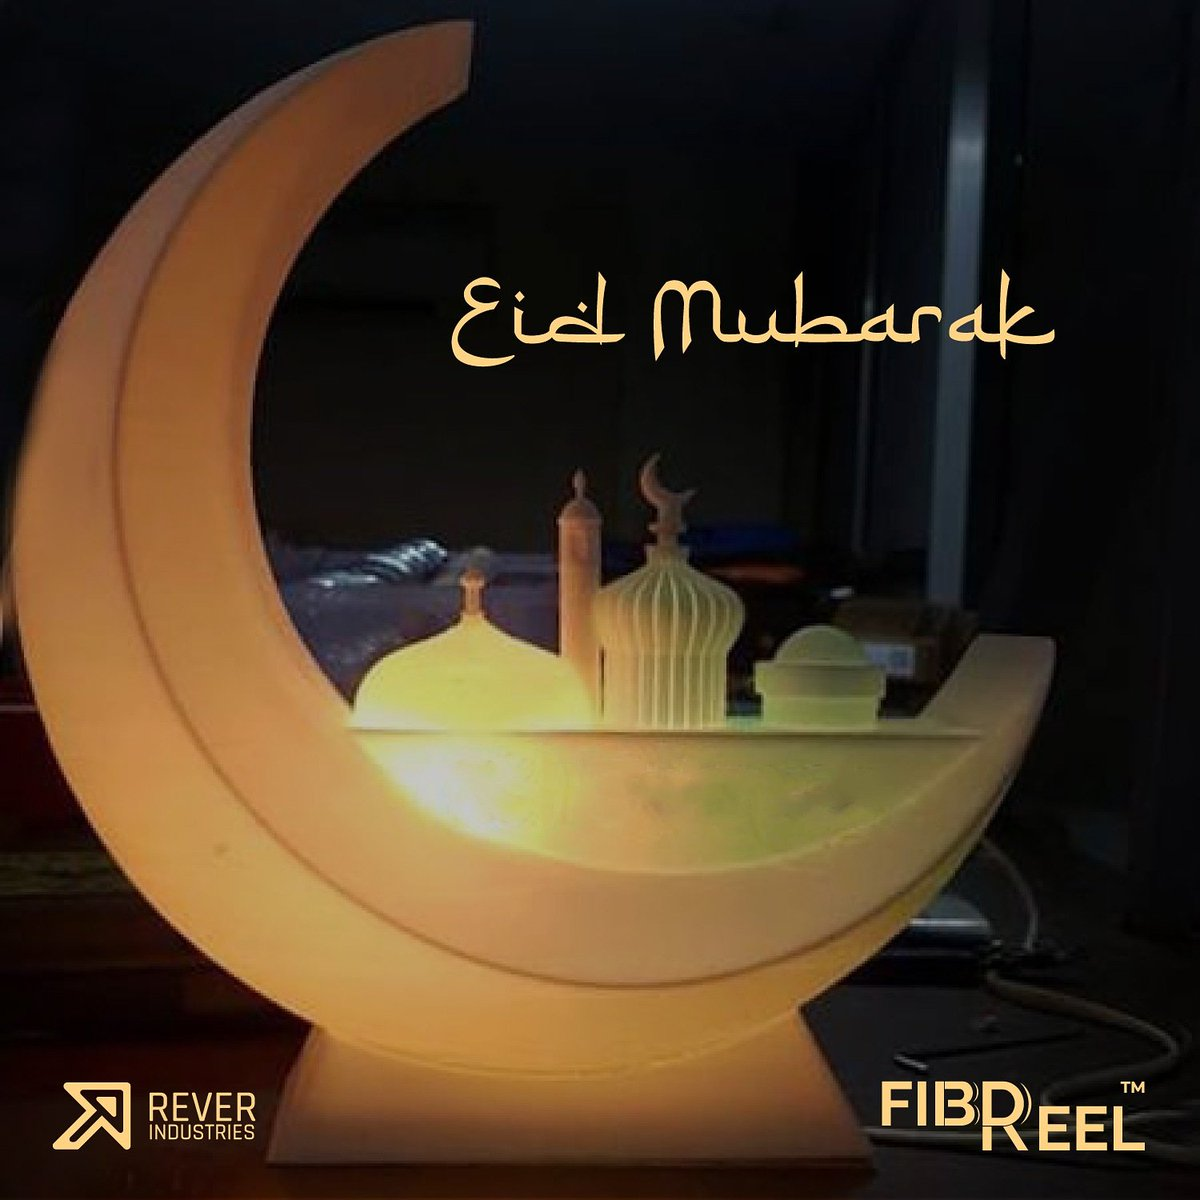 Eid Mubarak – may your homes and hearts be filled with joyful spirit of Eid. Laugh, Live, Love. #EidMubarak #Eid2019 #3dprinting #3dcubic